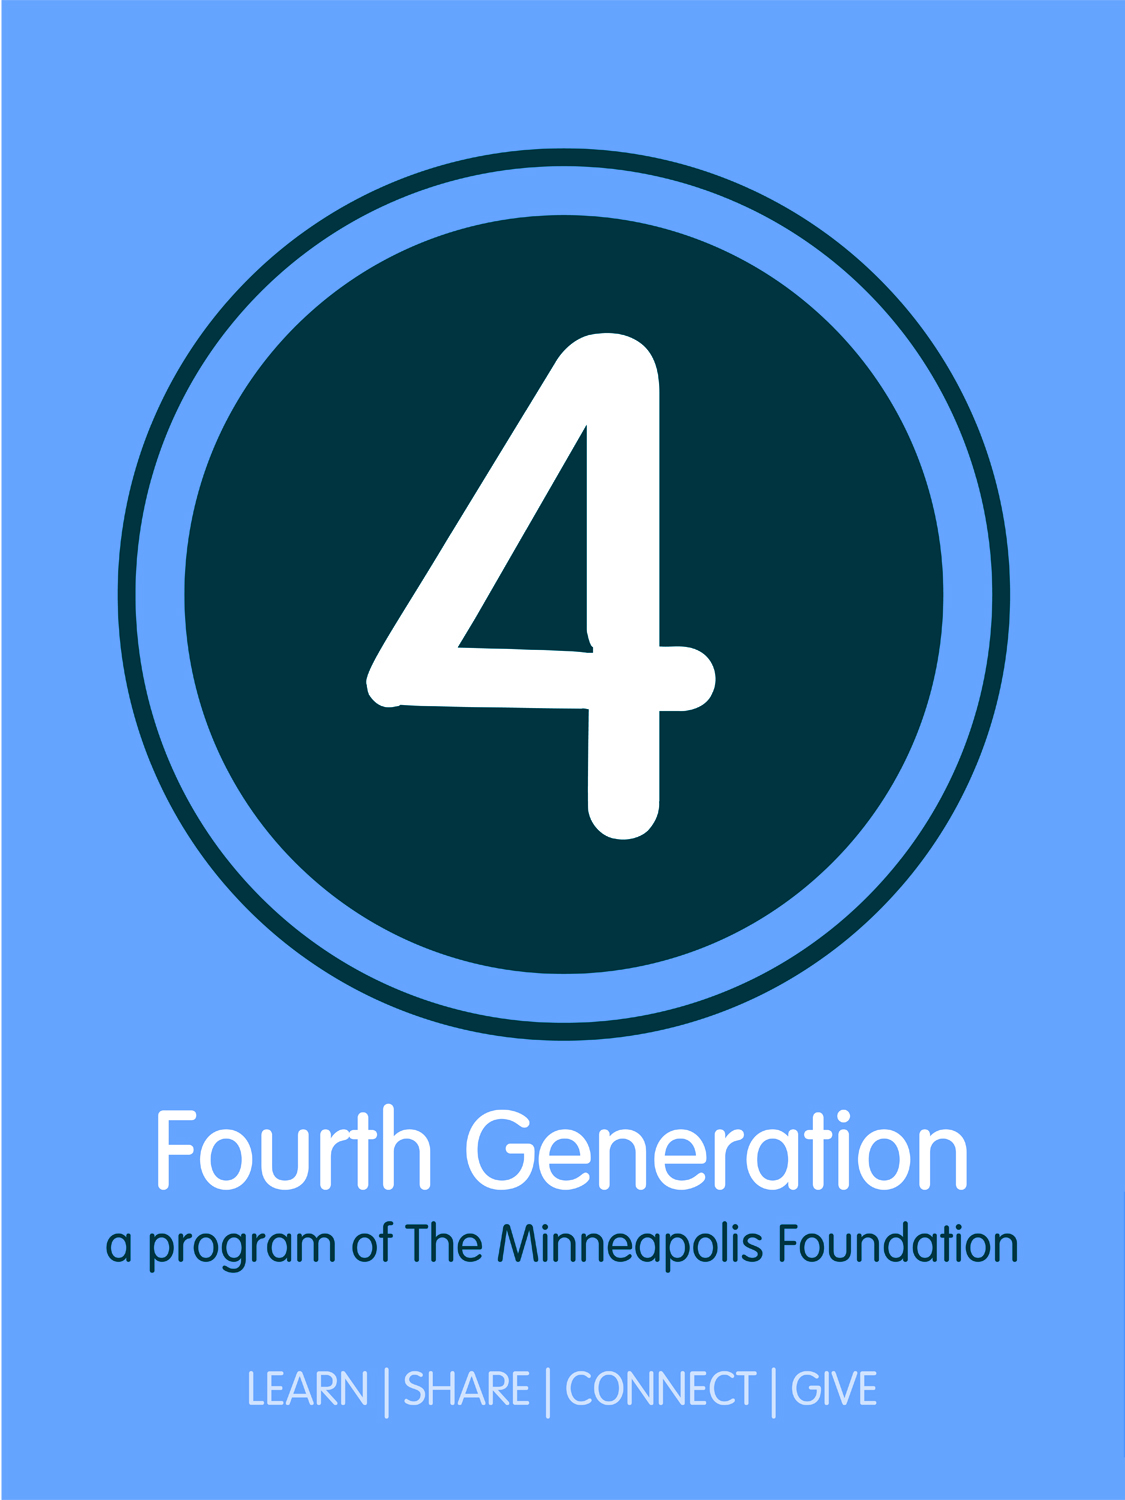 Fourth Generation, a program of the Minneapolis Foundation